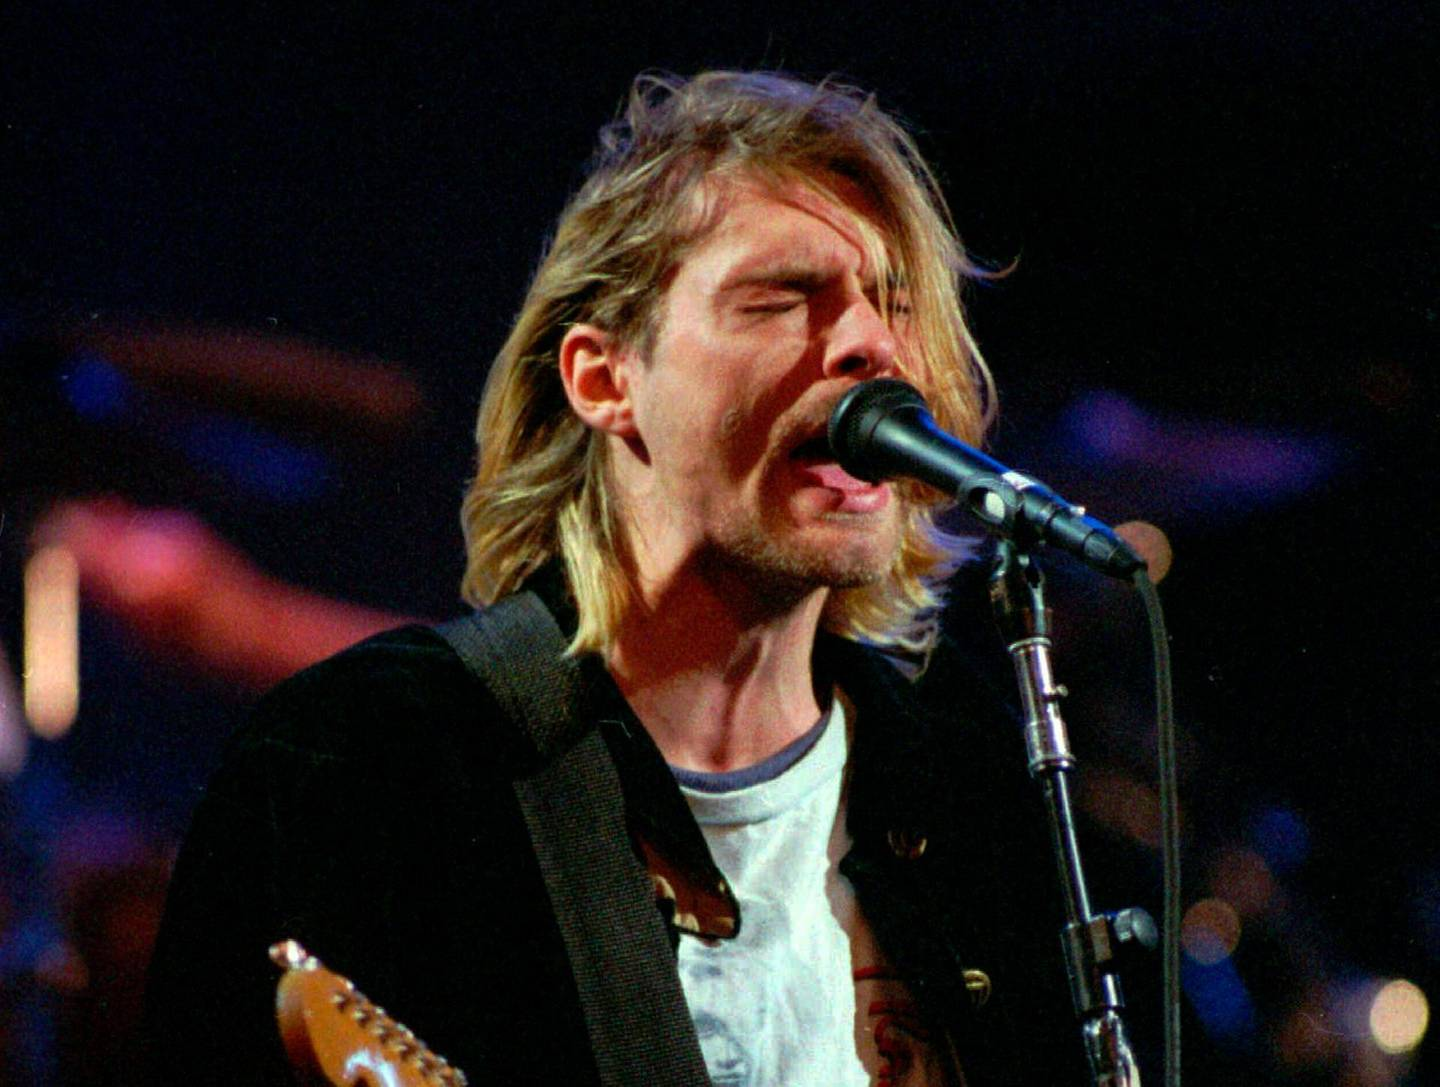 FILE In this Dec. 13, 1993, file photo, Kurt Cobain performs in Seattle. On the 25th anniversary of Cobain's death, dozens of people gathered throughout the day at a Seattle park near the house where the music icon killed himself, leaving flowers, candles and written messages. Cobain, whose band Nirvana rose to global fame amid the city's grunge rock years of the early 1990s, shot himself on April 5, 1994, in his home in a wealthy neighborhood near Lake Washington. (AP Photo/Robert Sorbo, File)